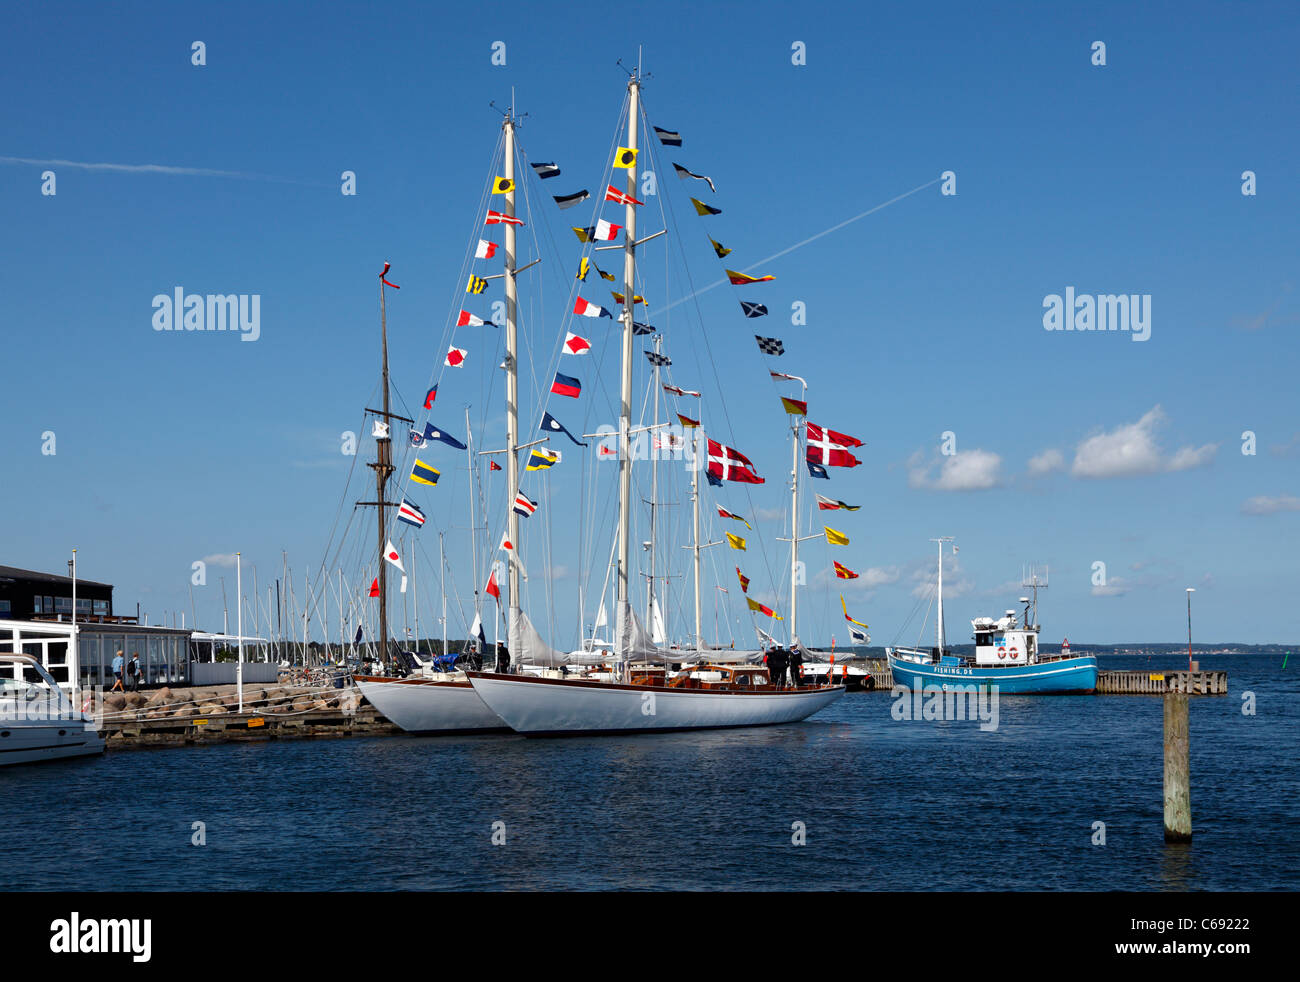 The two training ships Svanen (The Swan) and Thyra of the Danish Navy on the traditional visit to Rungsted Harbour - Stock Image